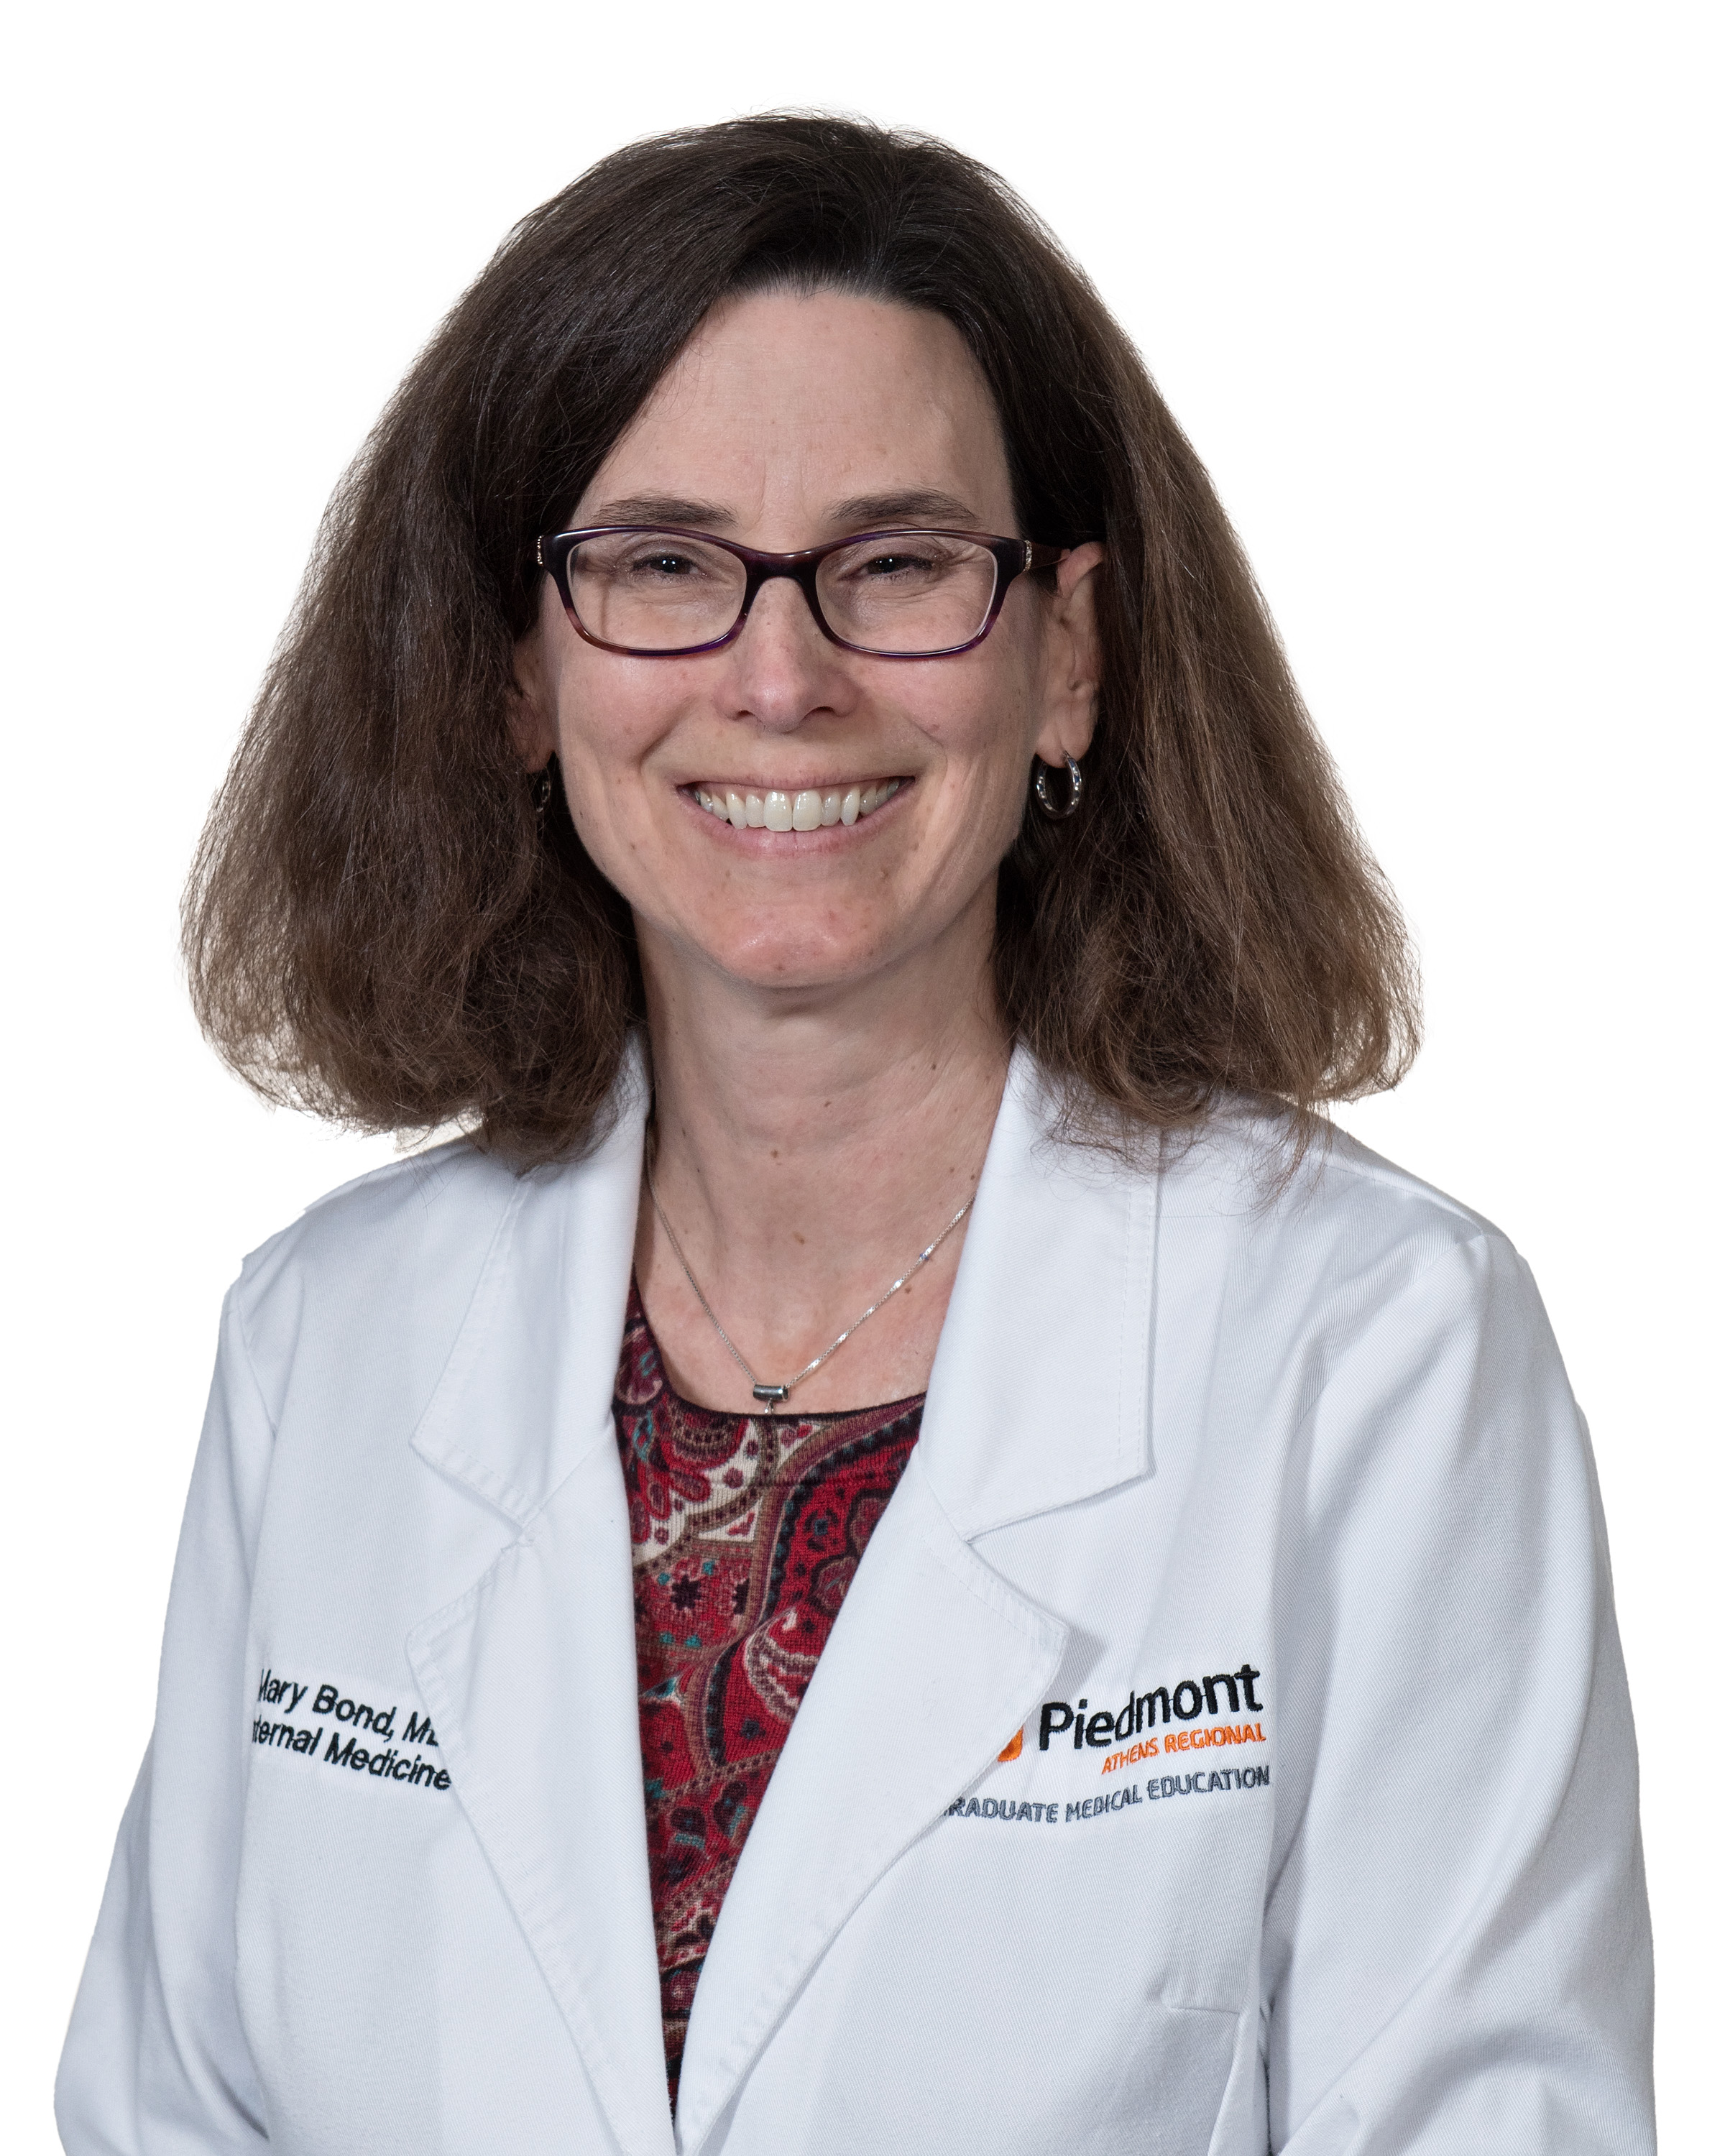 Mary Bond, MD